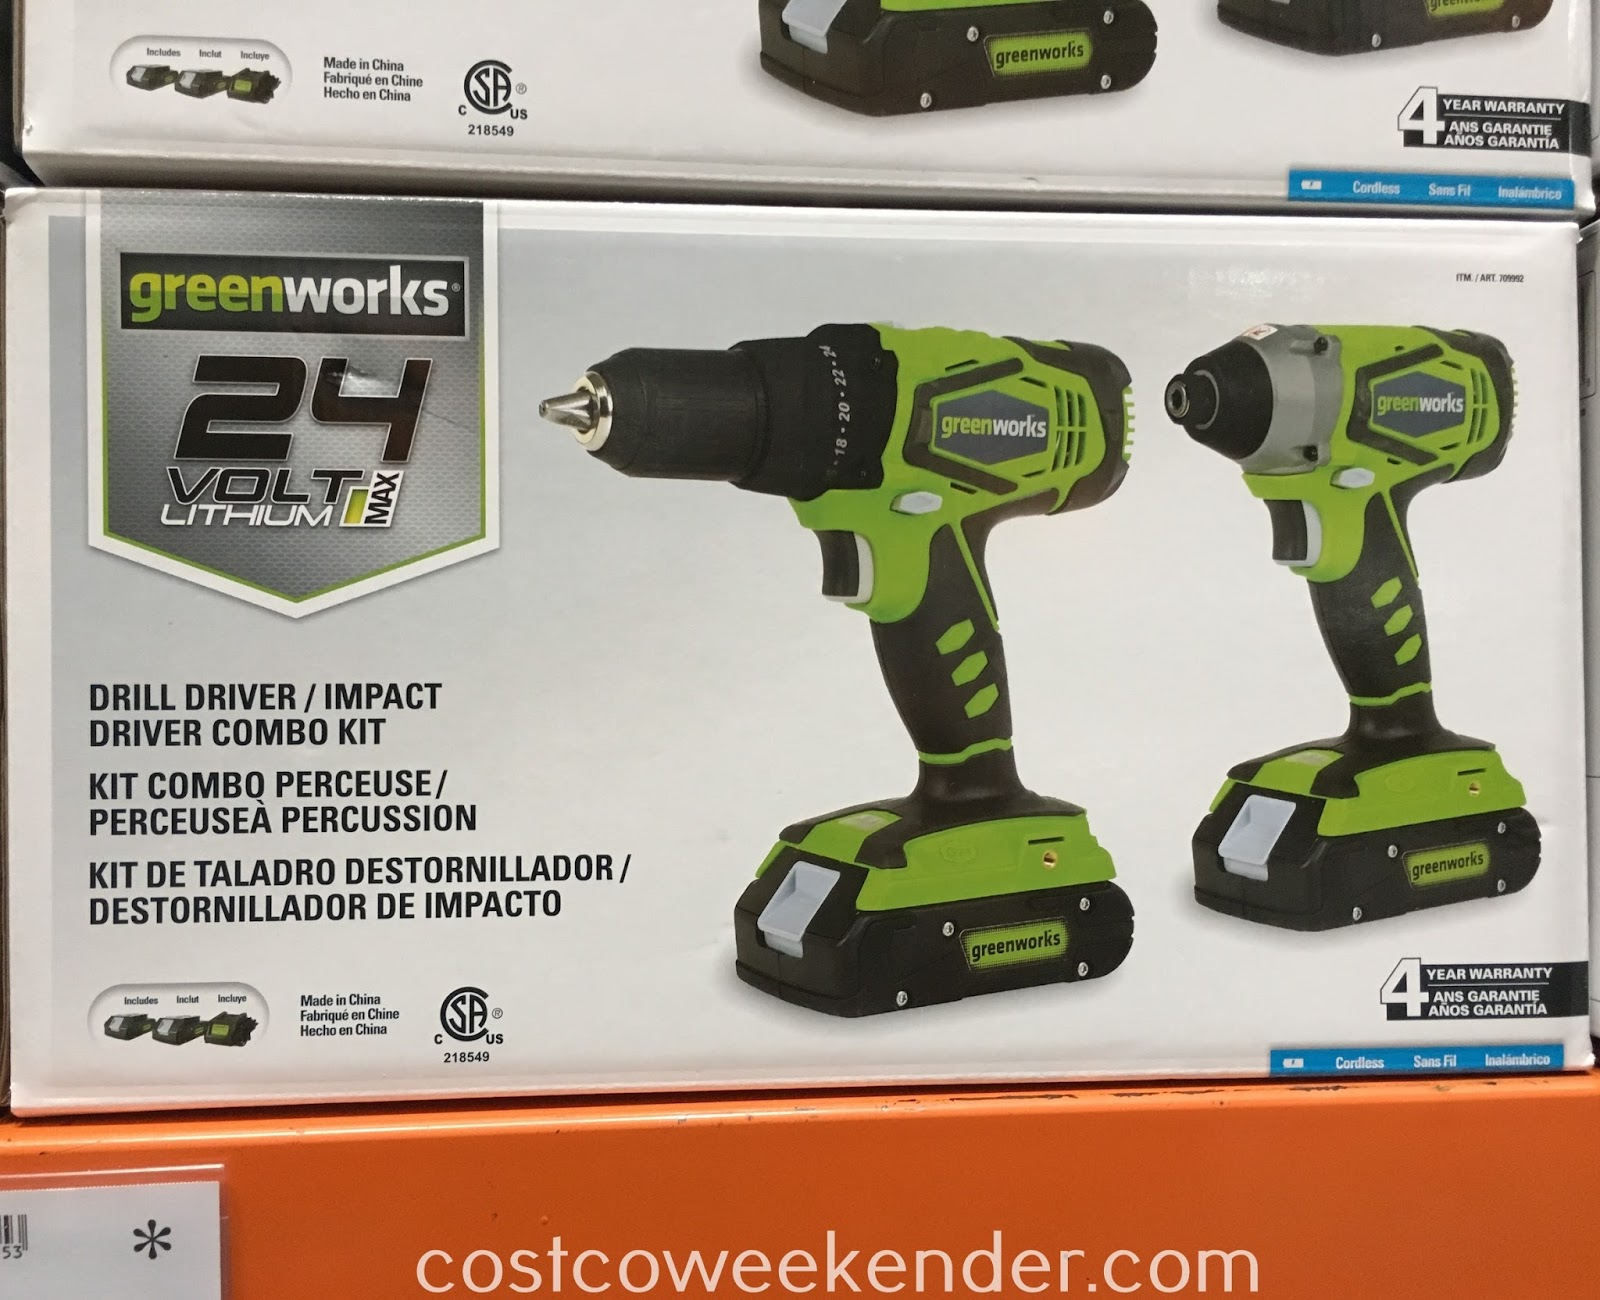 Do some home repair with the GreenWorks Drill Driver/Impact Driver Combo Kit